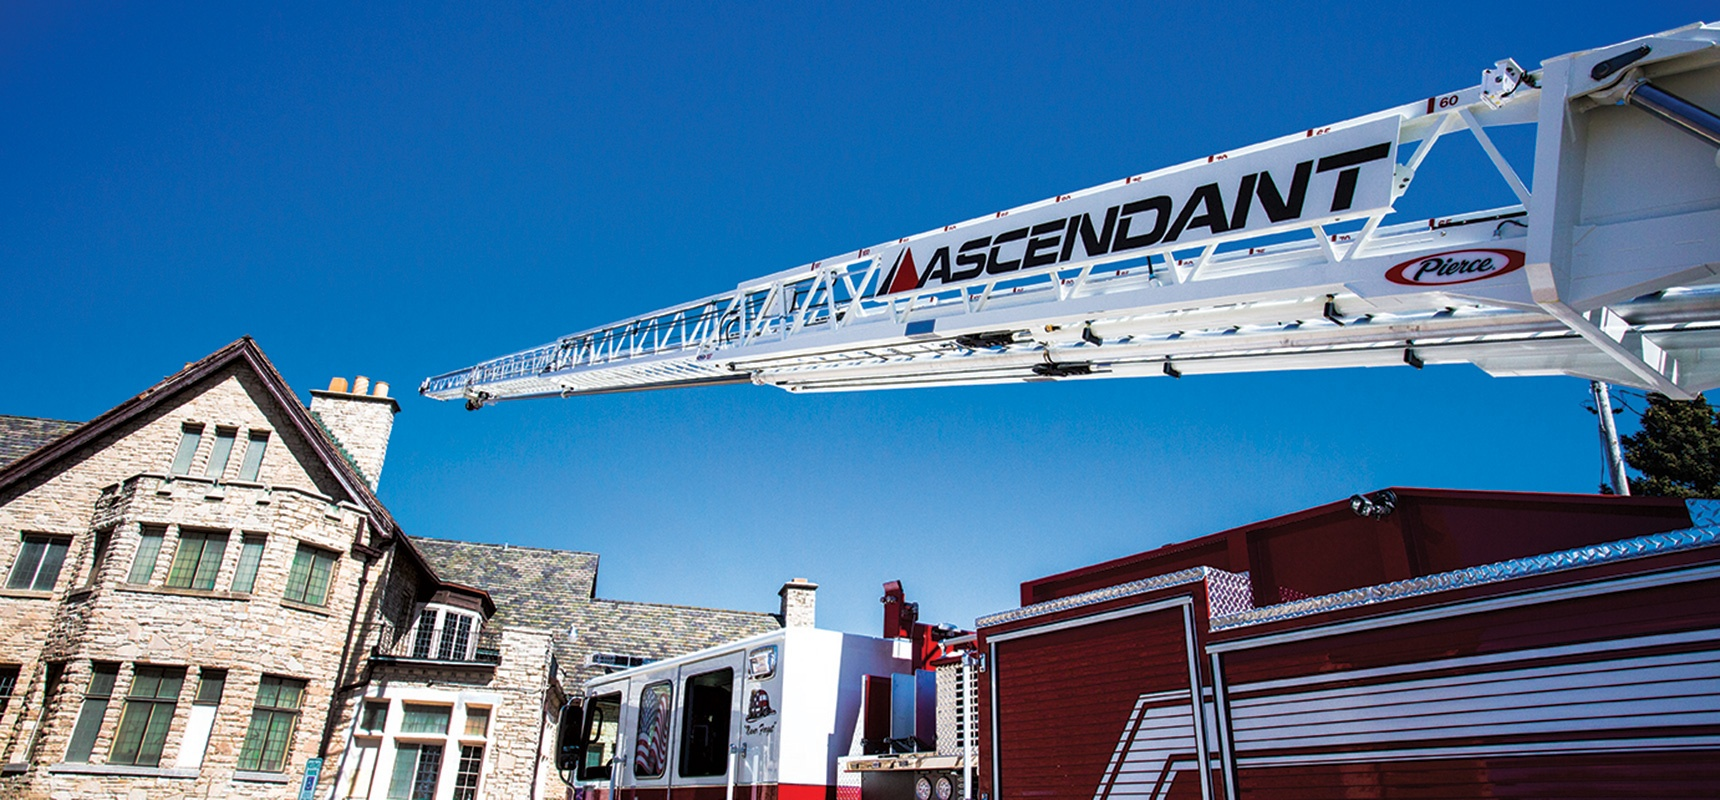 Pierce-Announces-Several-New-Patent-Awards-for-its-Ascendant-Class-of-Aerial-Apparatus_Header.jpg